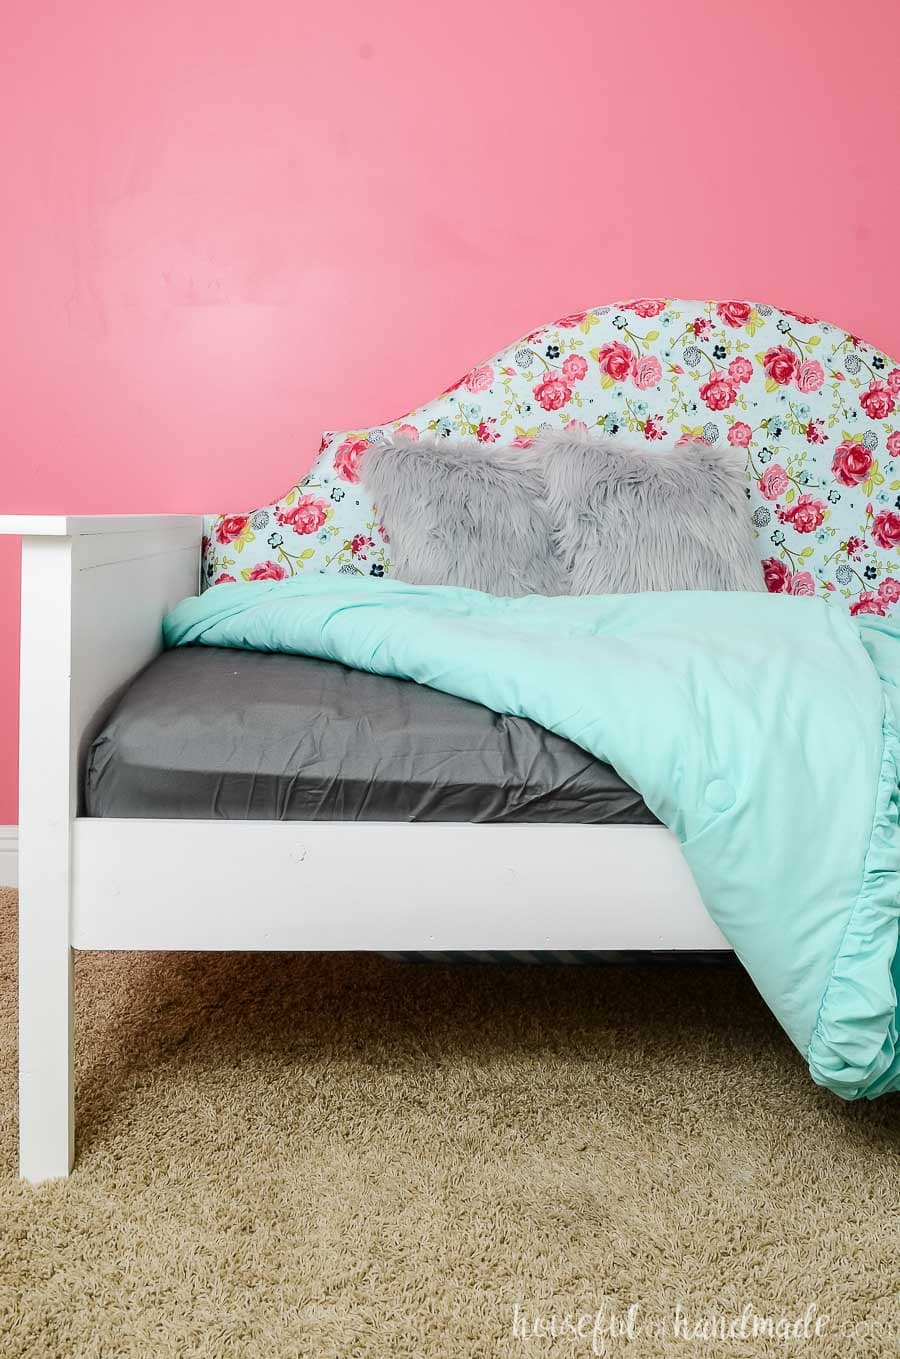 Day beds are the perfect bed for a small room or spare room. You can easily make them into seating during the day, they sit against a wall to take up less space, but you can quickly climb into bed to sleep. Plenty of room for storage or a trundle underneath. Get the free build plans at Housefulofhandmade.com.